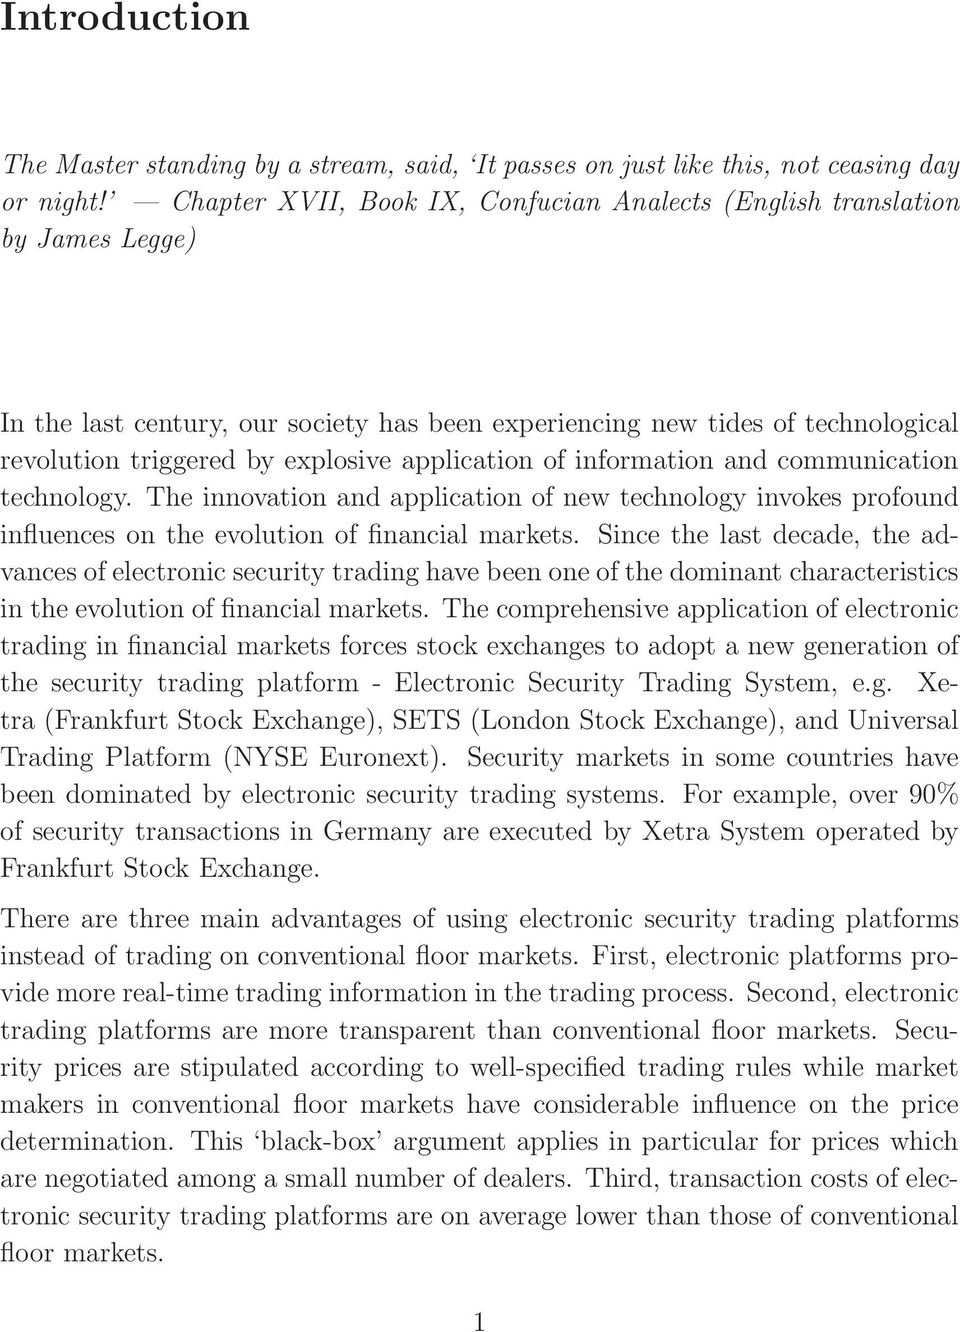 application of information and communication technology. The innovation and application of new technology invokes profound influences on the evolution of financial markets.